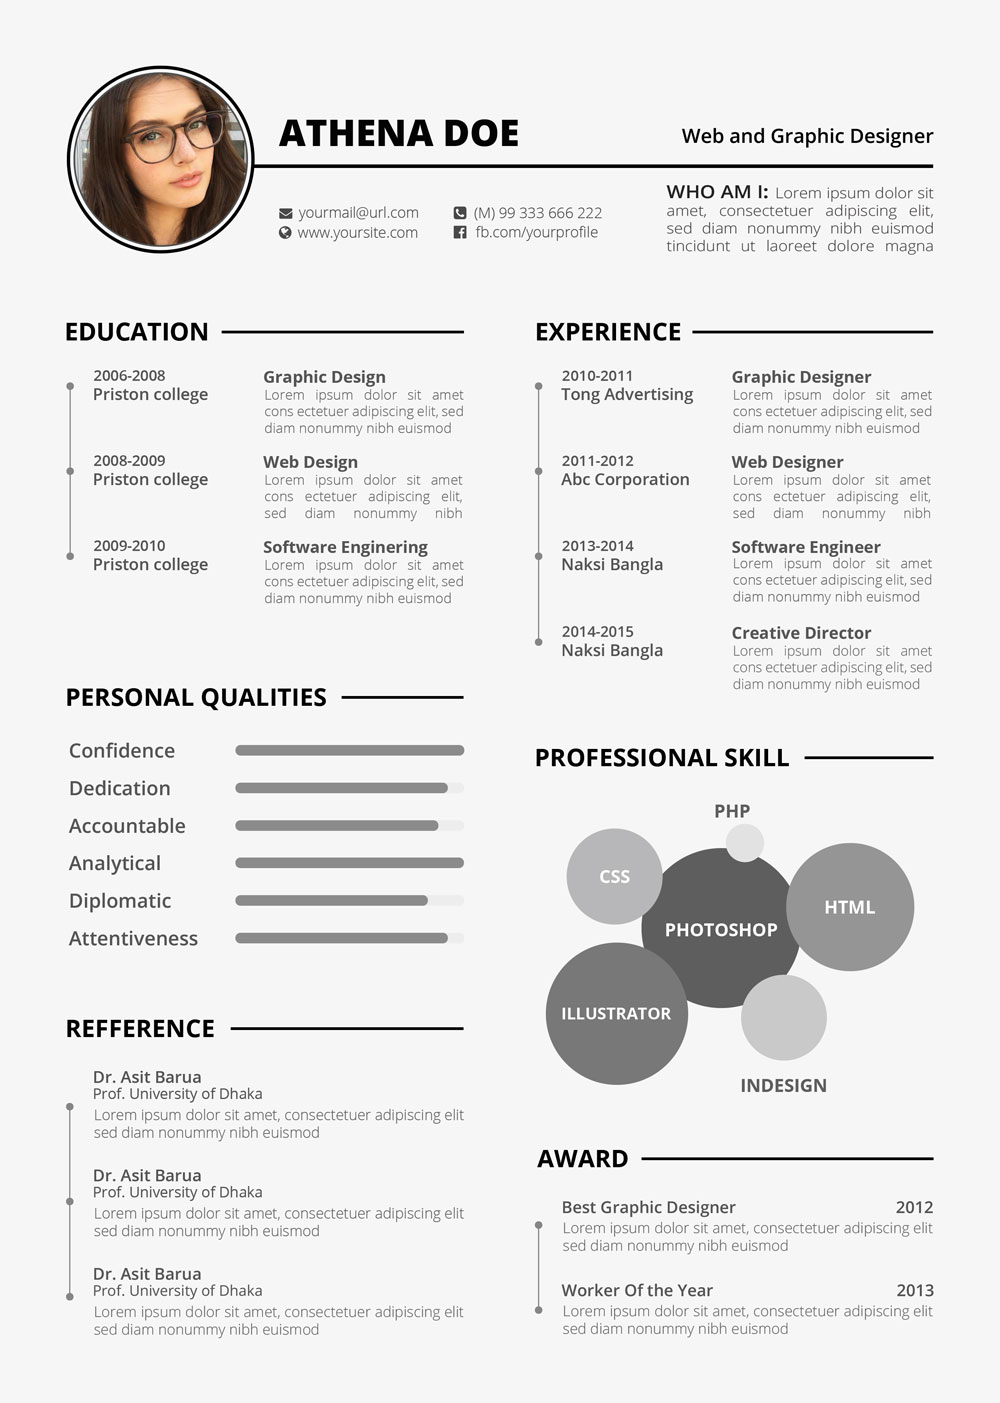 Free-Elegant-CV-Template-in-Word-PSD-&-Ai-Format-1 (3)